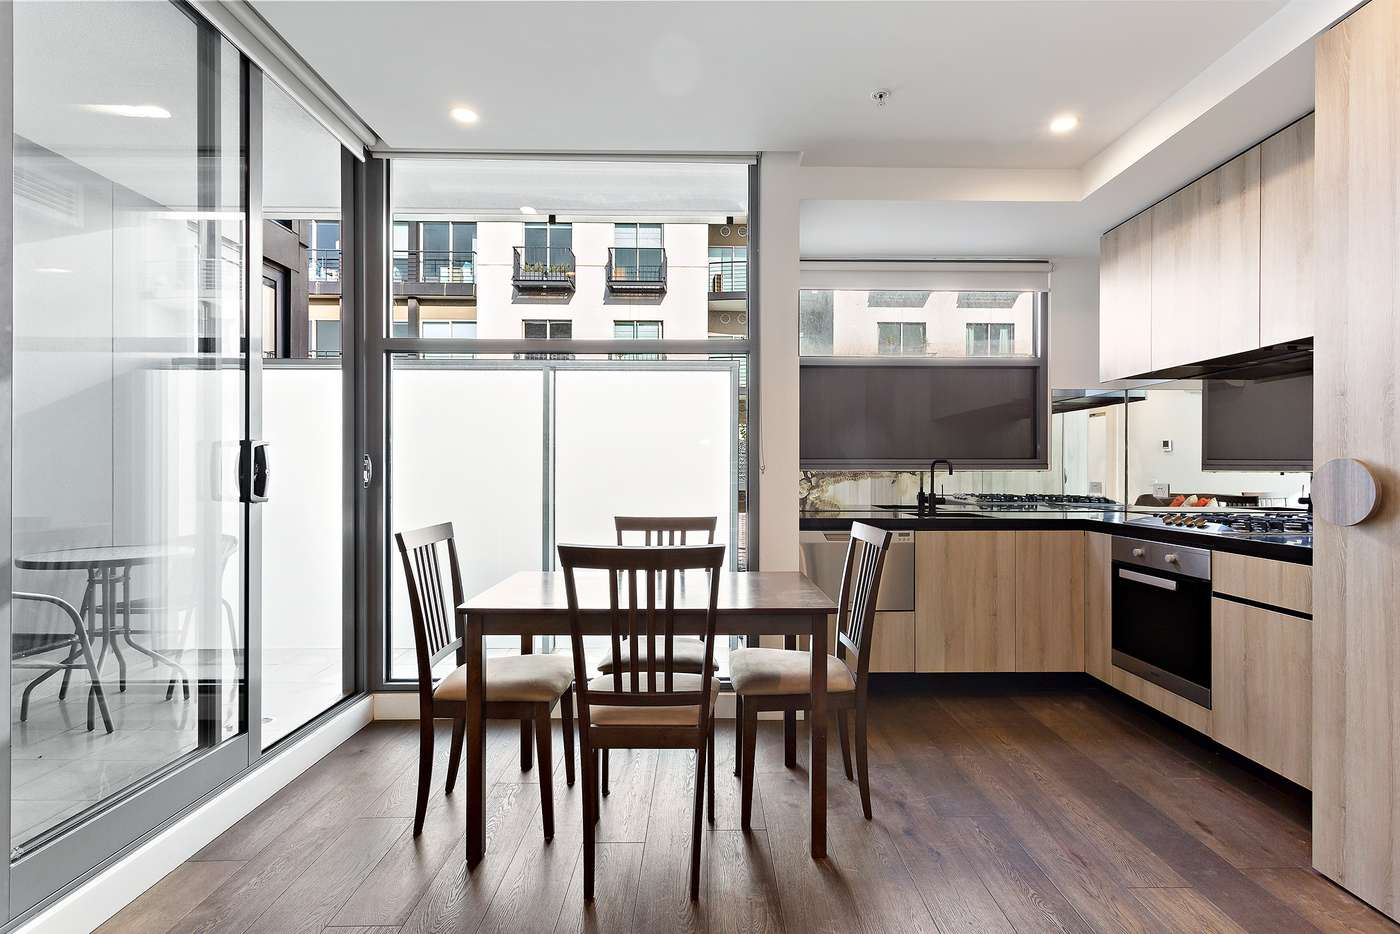 Main view of Homely apartment listing, 303/19-25 Nott Street, Port Melbourne VIC 3207